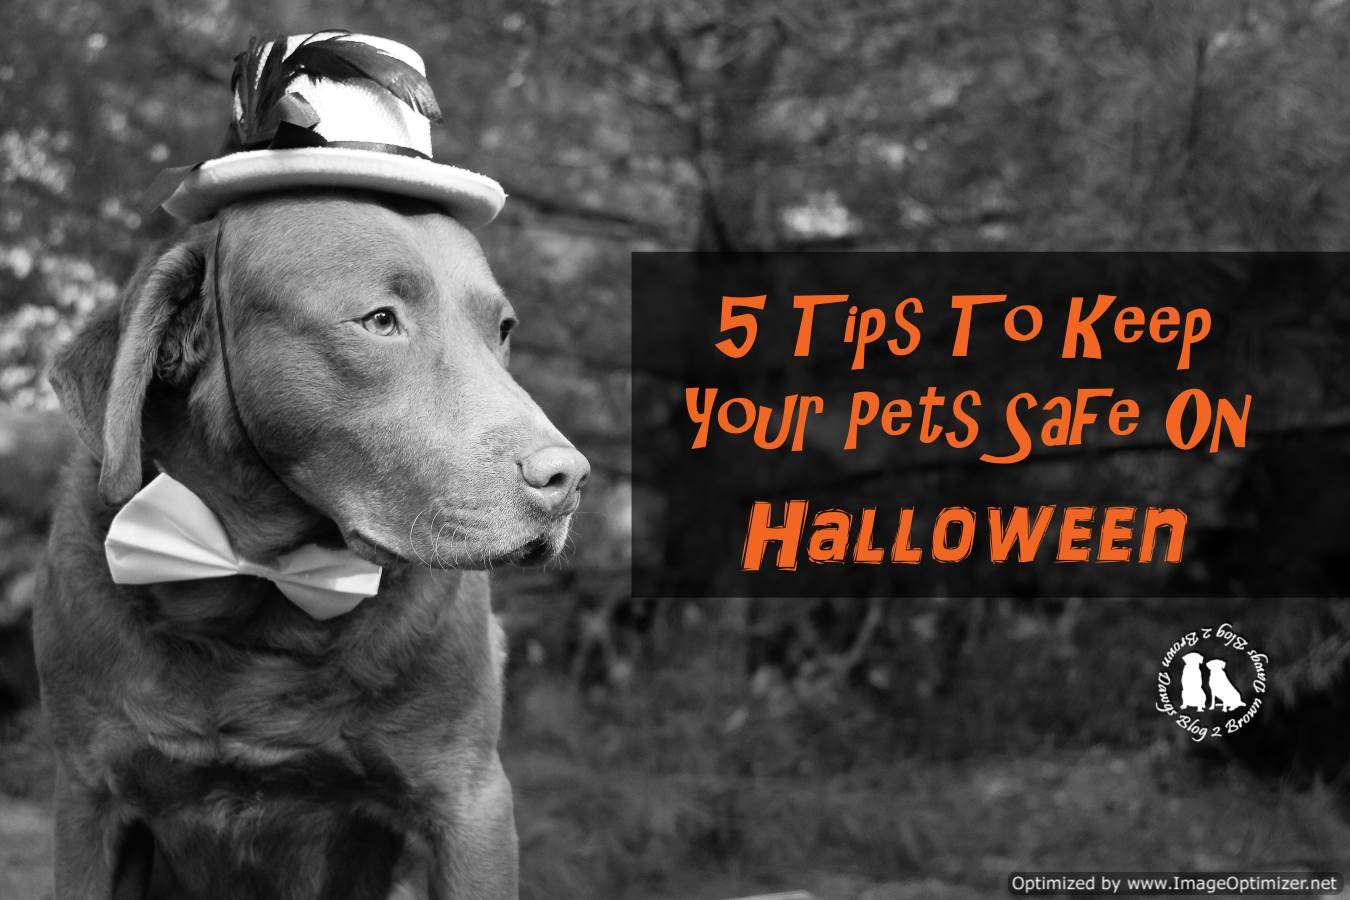 5 Tips To Keep Your Pets Safe On Halloween